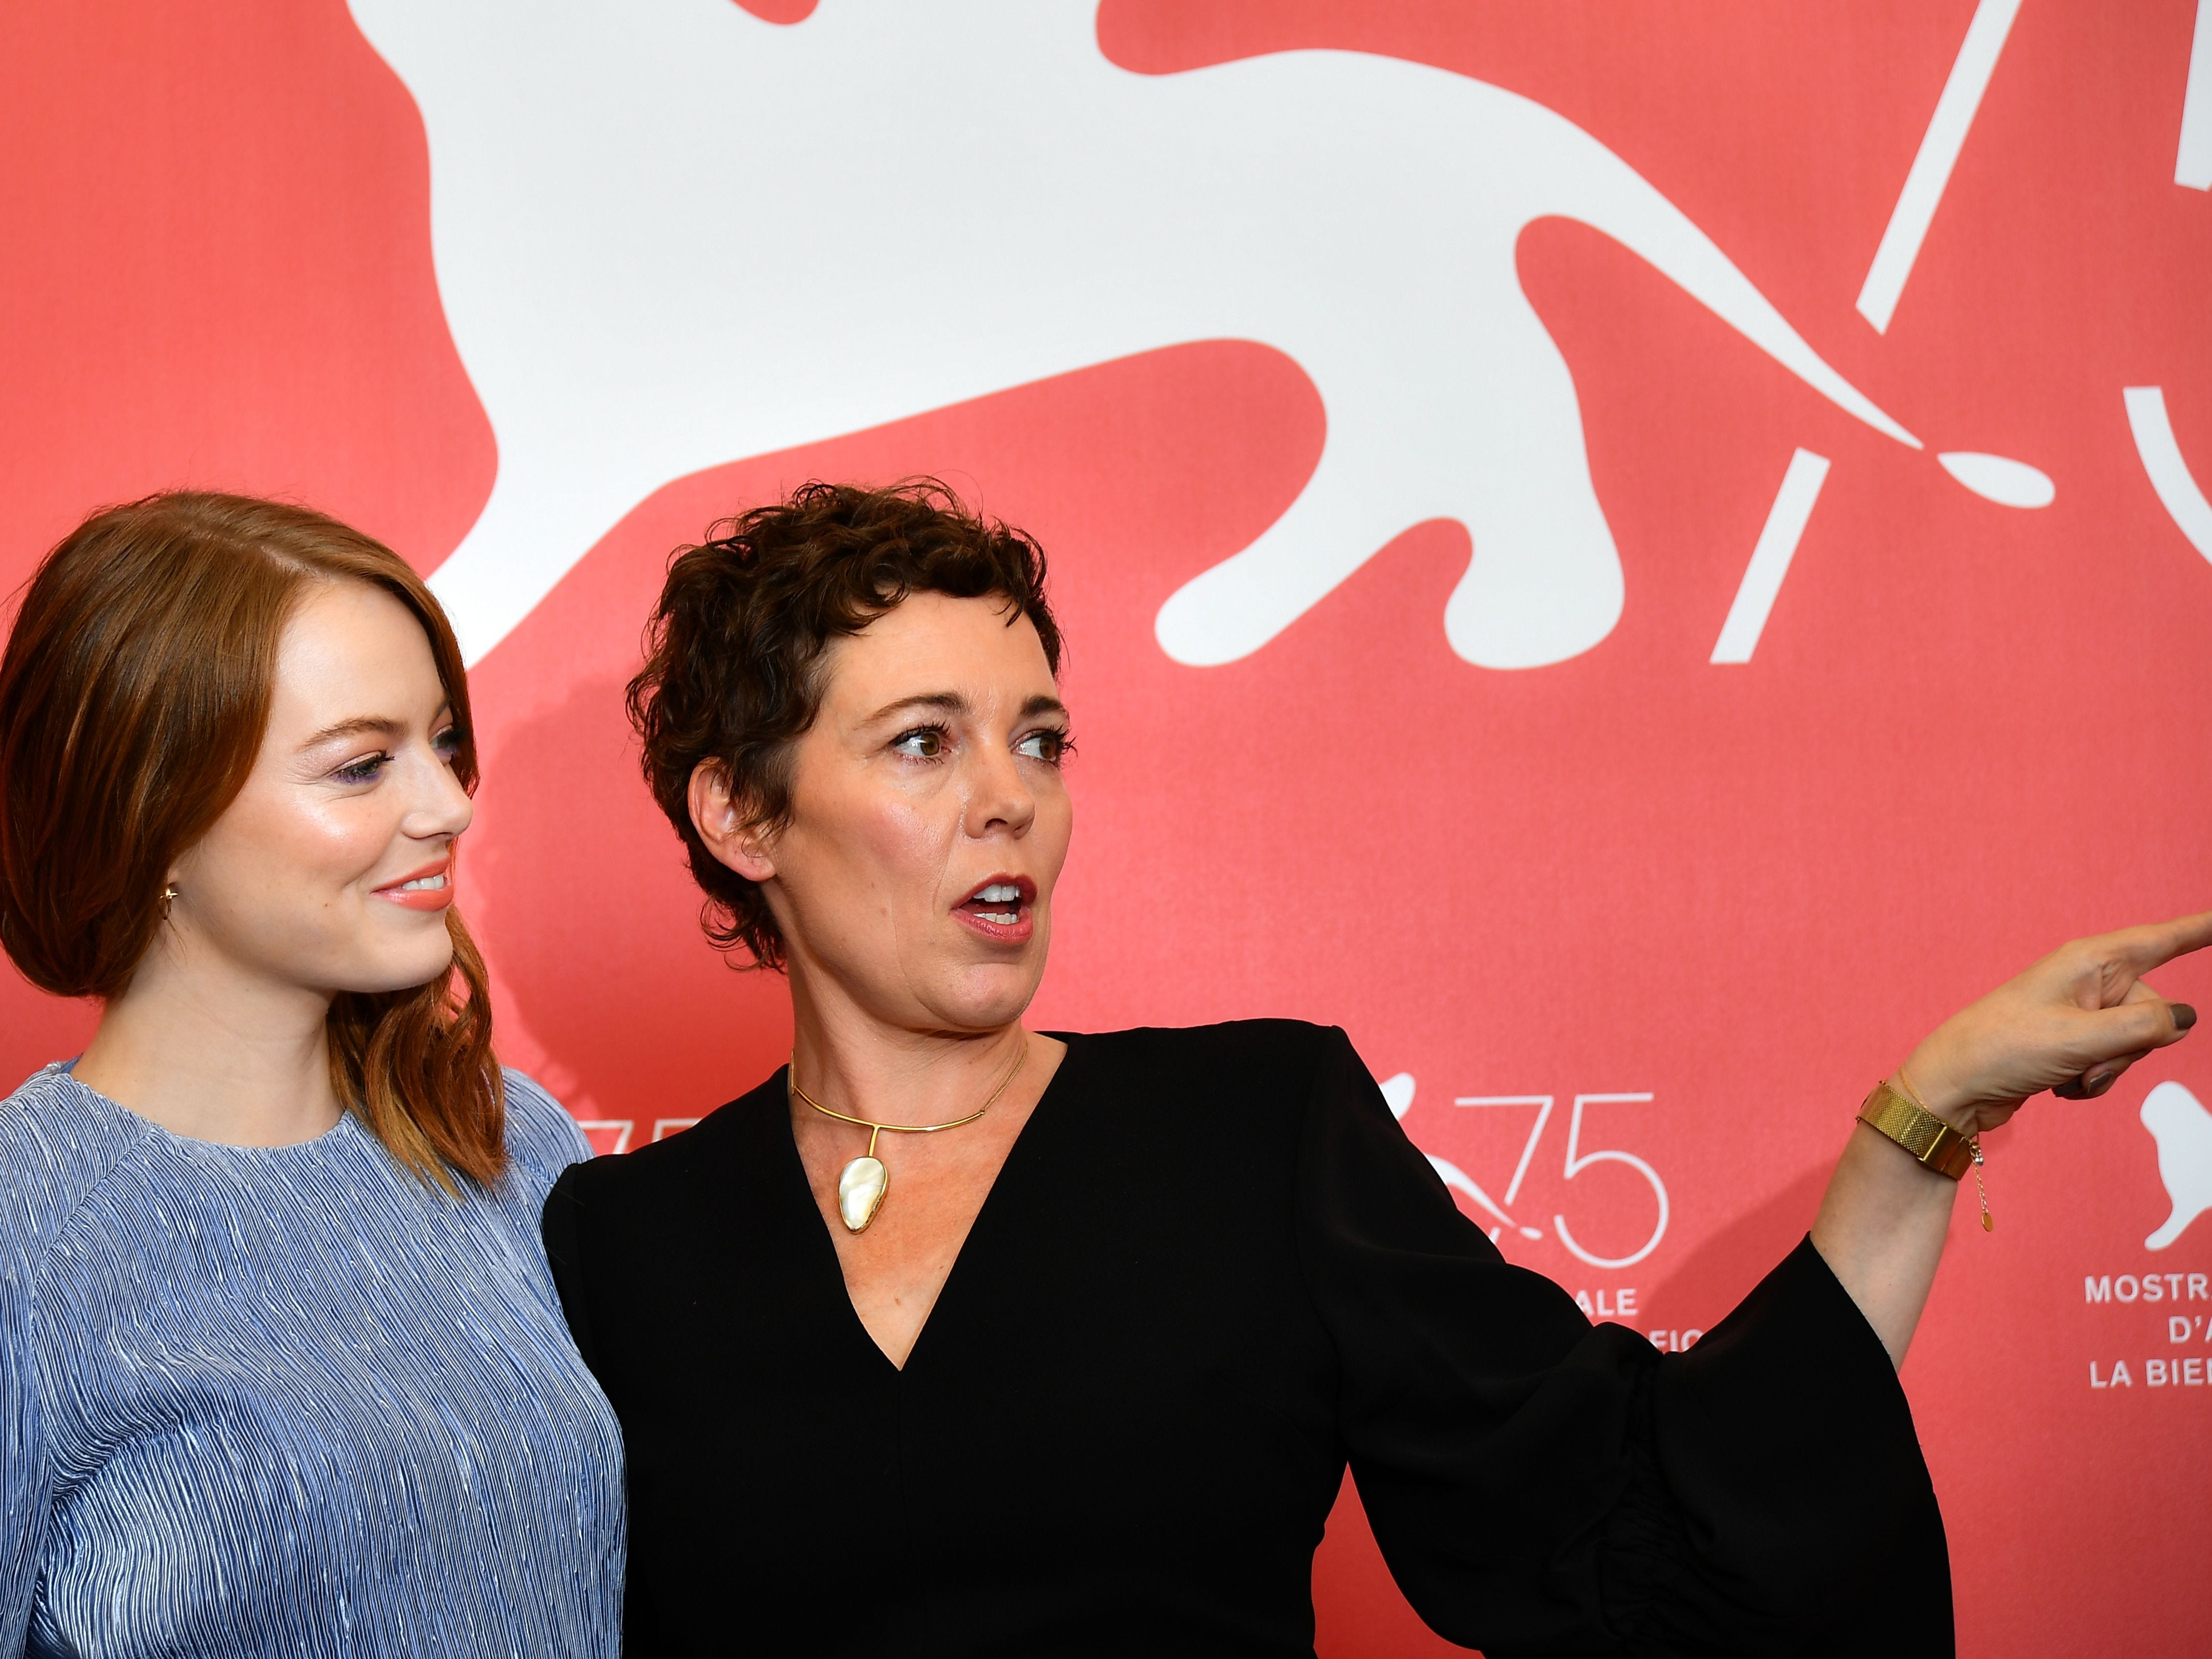 """Actress Emma Stone (L) and actress Olivia Colman attend a photocall for the film """"The Favourite"""" presented in competition on August 30, 2018 during the 75th Venice Film Festival at Venice Lido. (Photo by Vincenzo PINTO / AFP)VINCENZO PINTO/AFP/Getty Images ORIG FILE ID: AFP_18P8J2 x"""